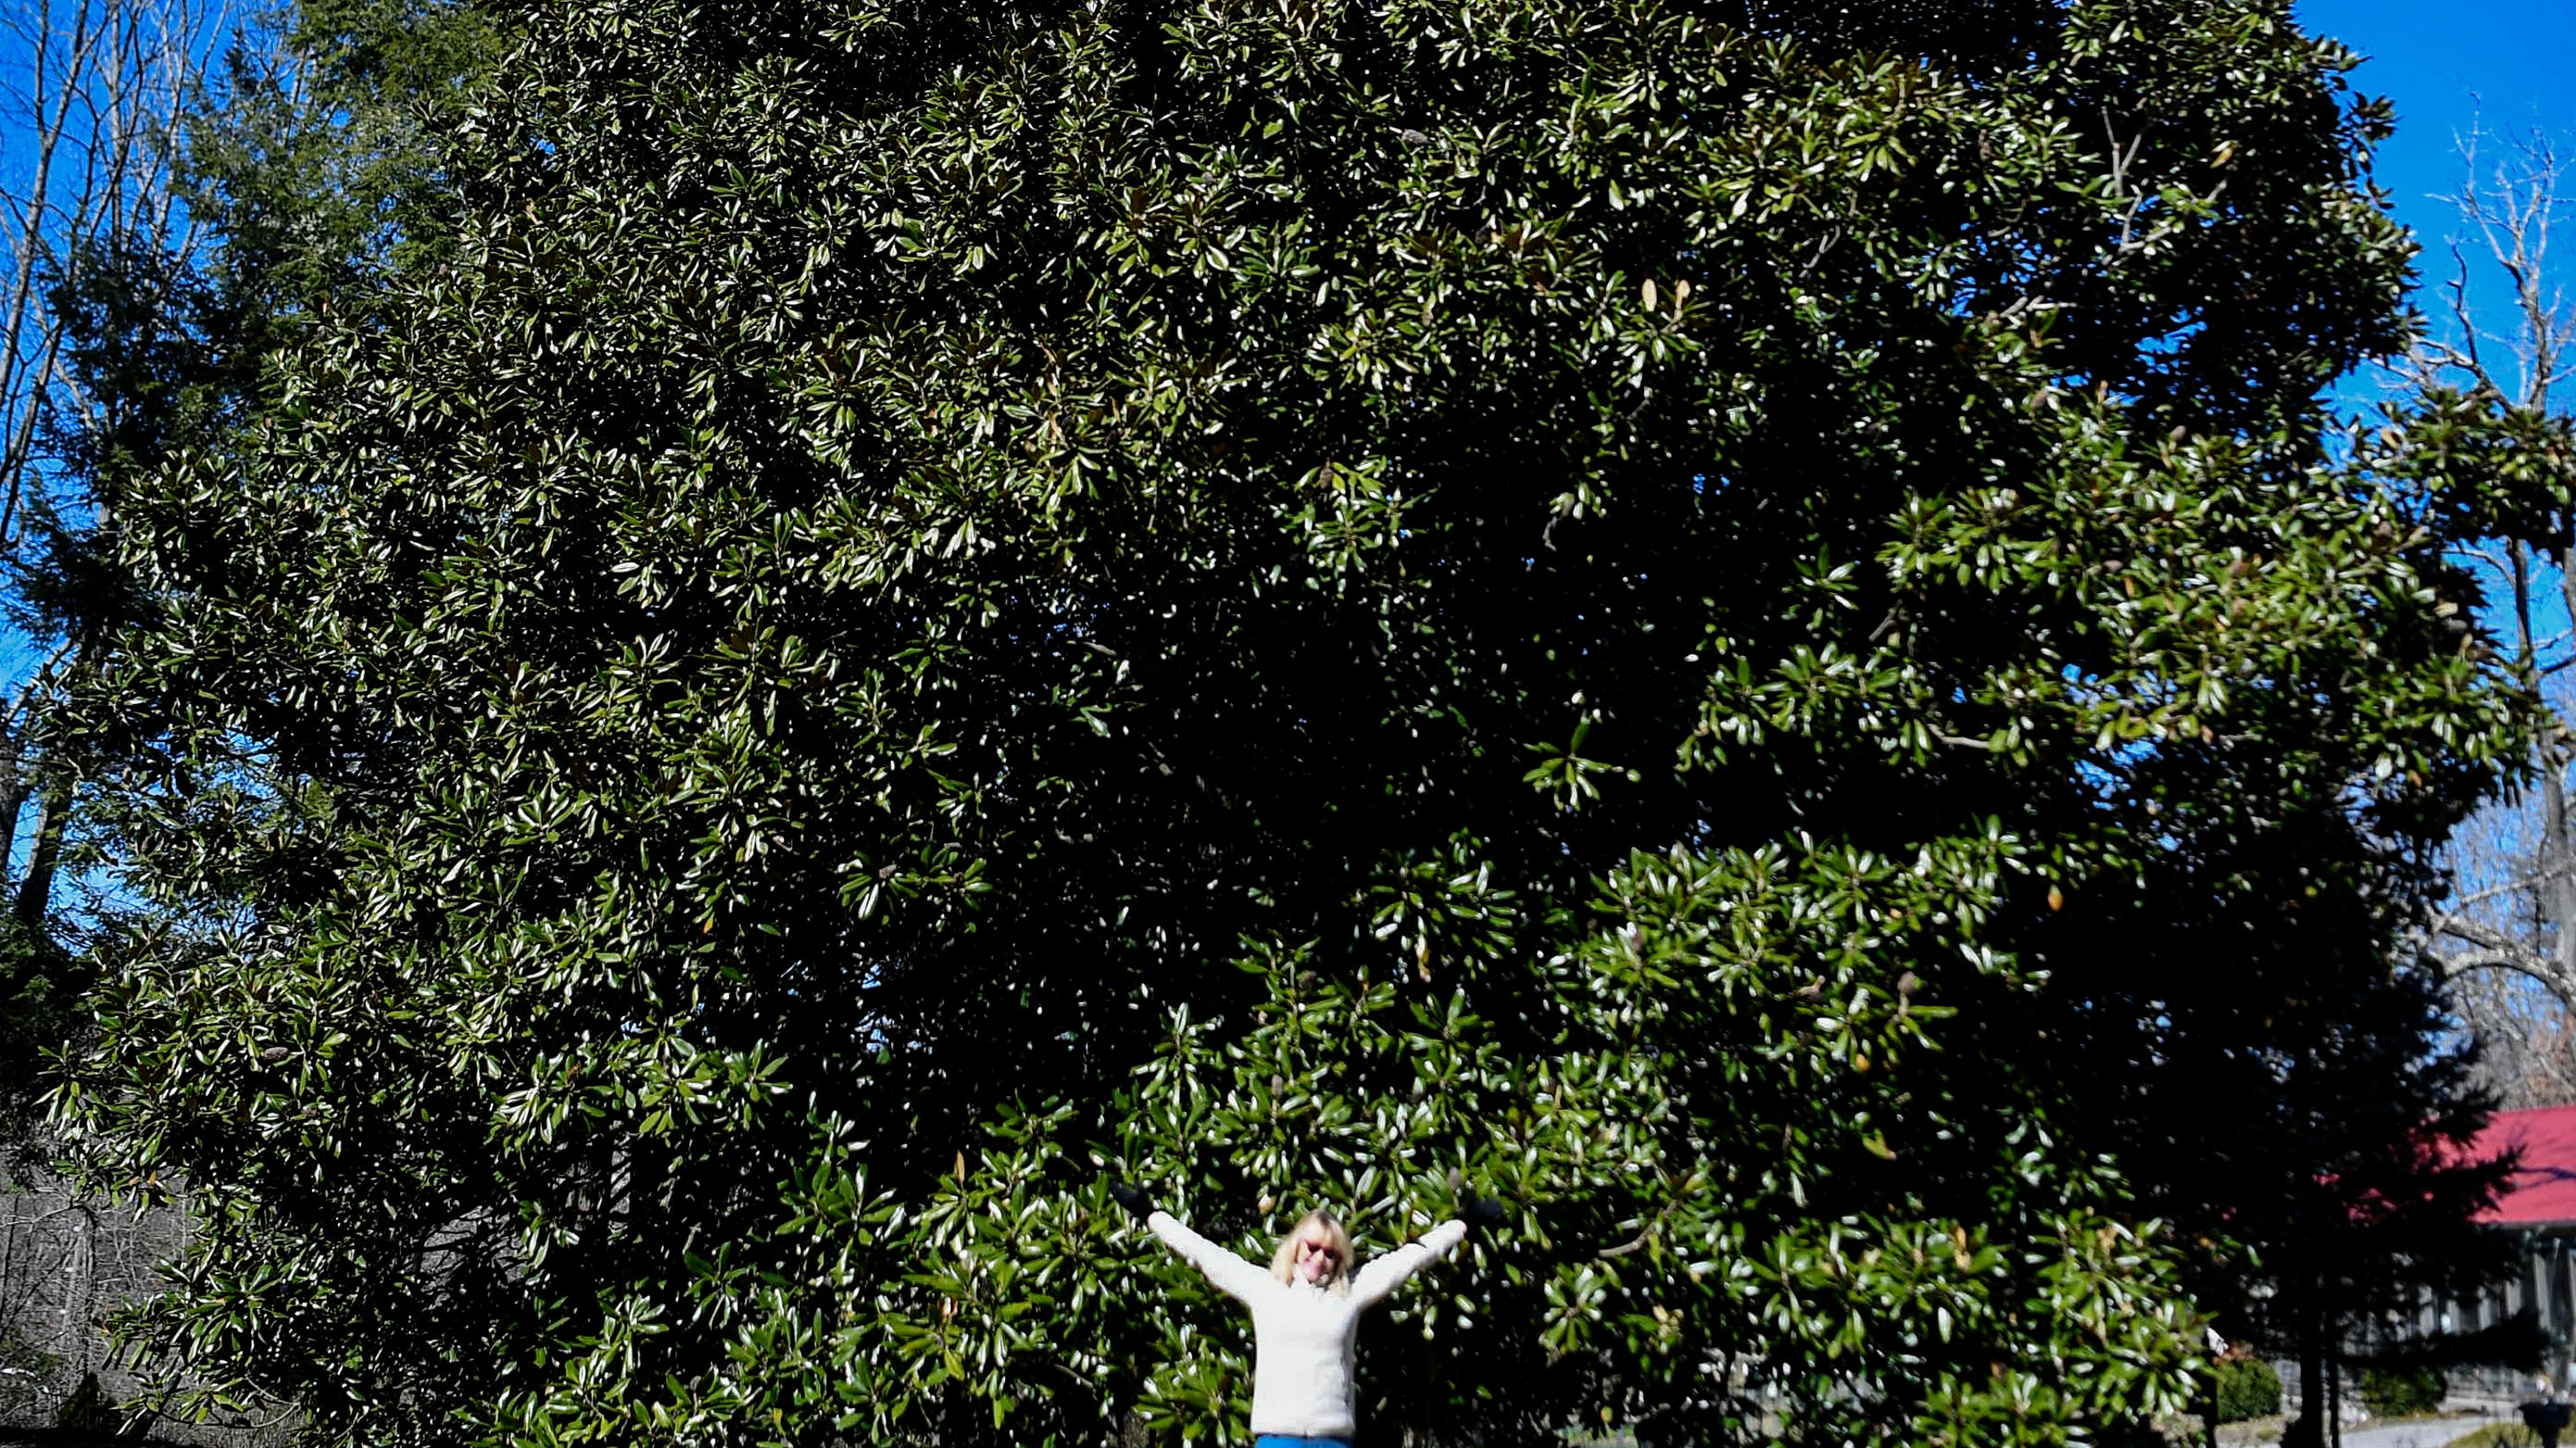 Asheville Tree Activist Move To Protect Treasured Trees Urban Forest